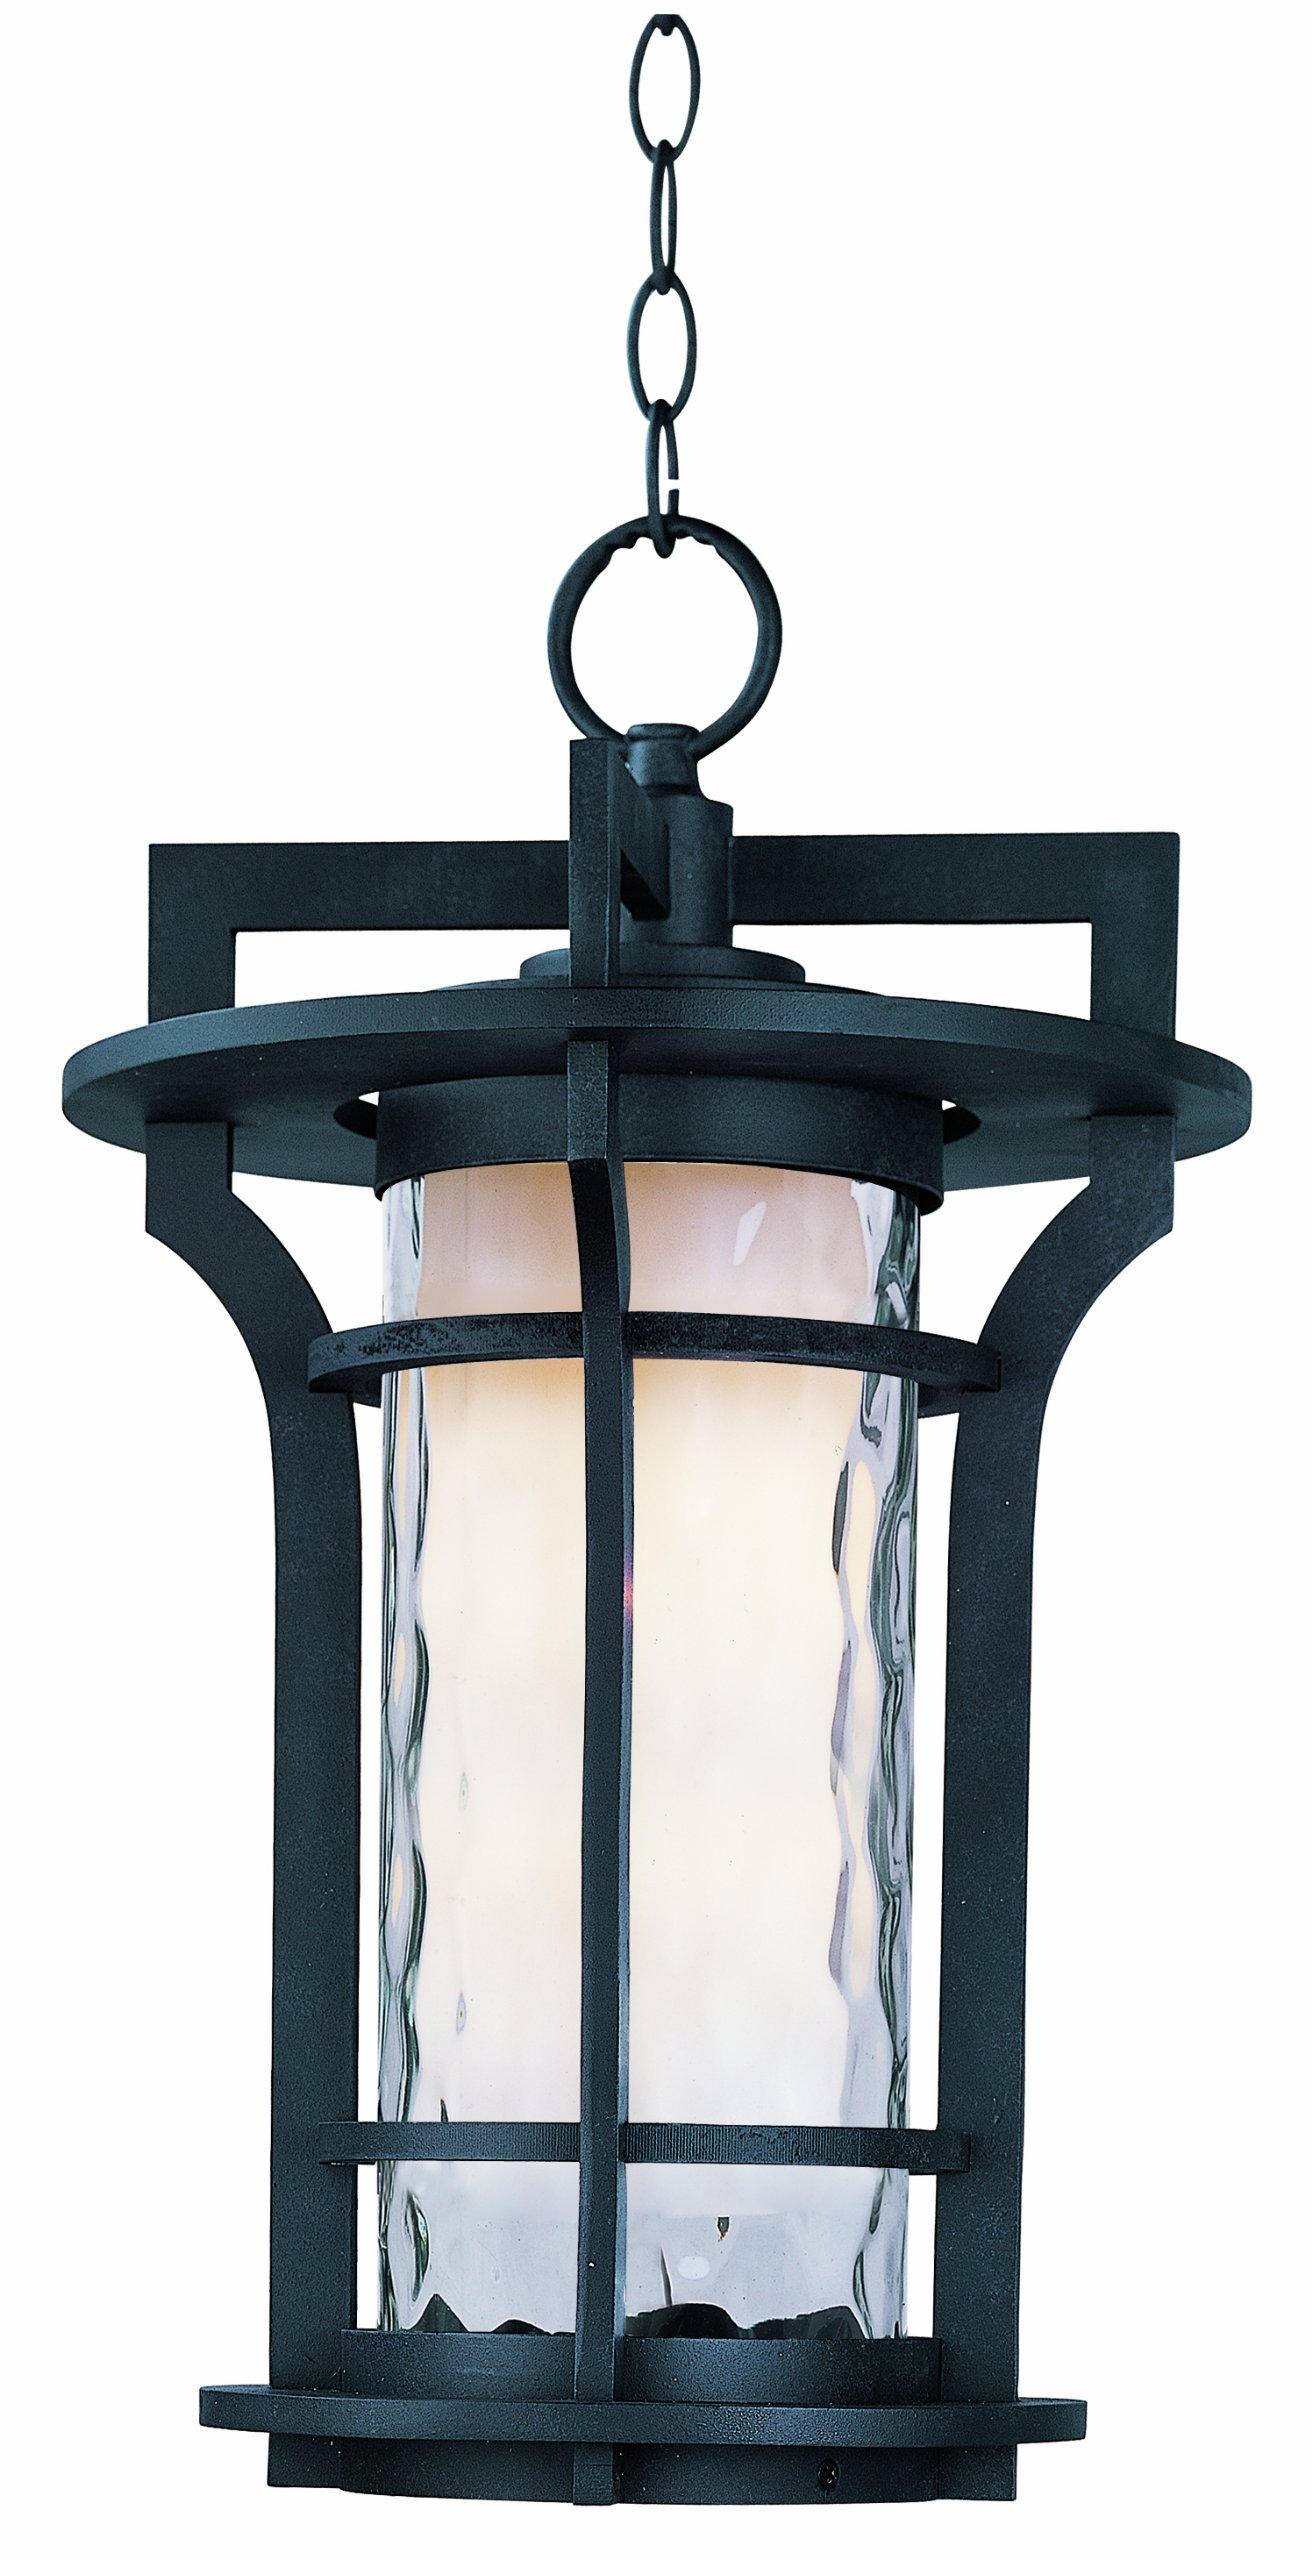 Maxim 30488WGBO Oakville 1-Light Outdoor Hanging Lantern, Black Oxide Finish, Water Glass Glass, MB Incandescent Incandescent Bulb , 9W Max., Wet Safety Rating, Shade Material, 800 Rated Lumens by Maxim Lighting